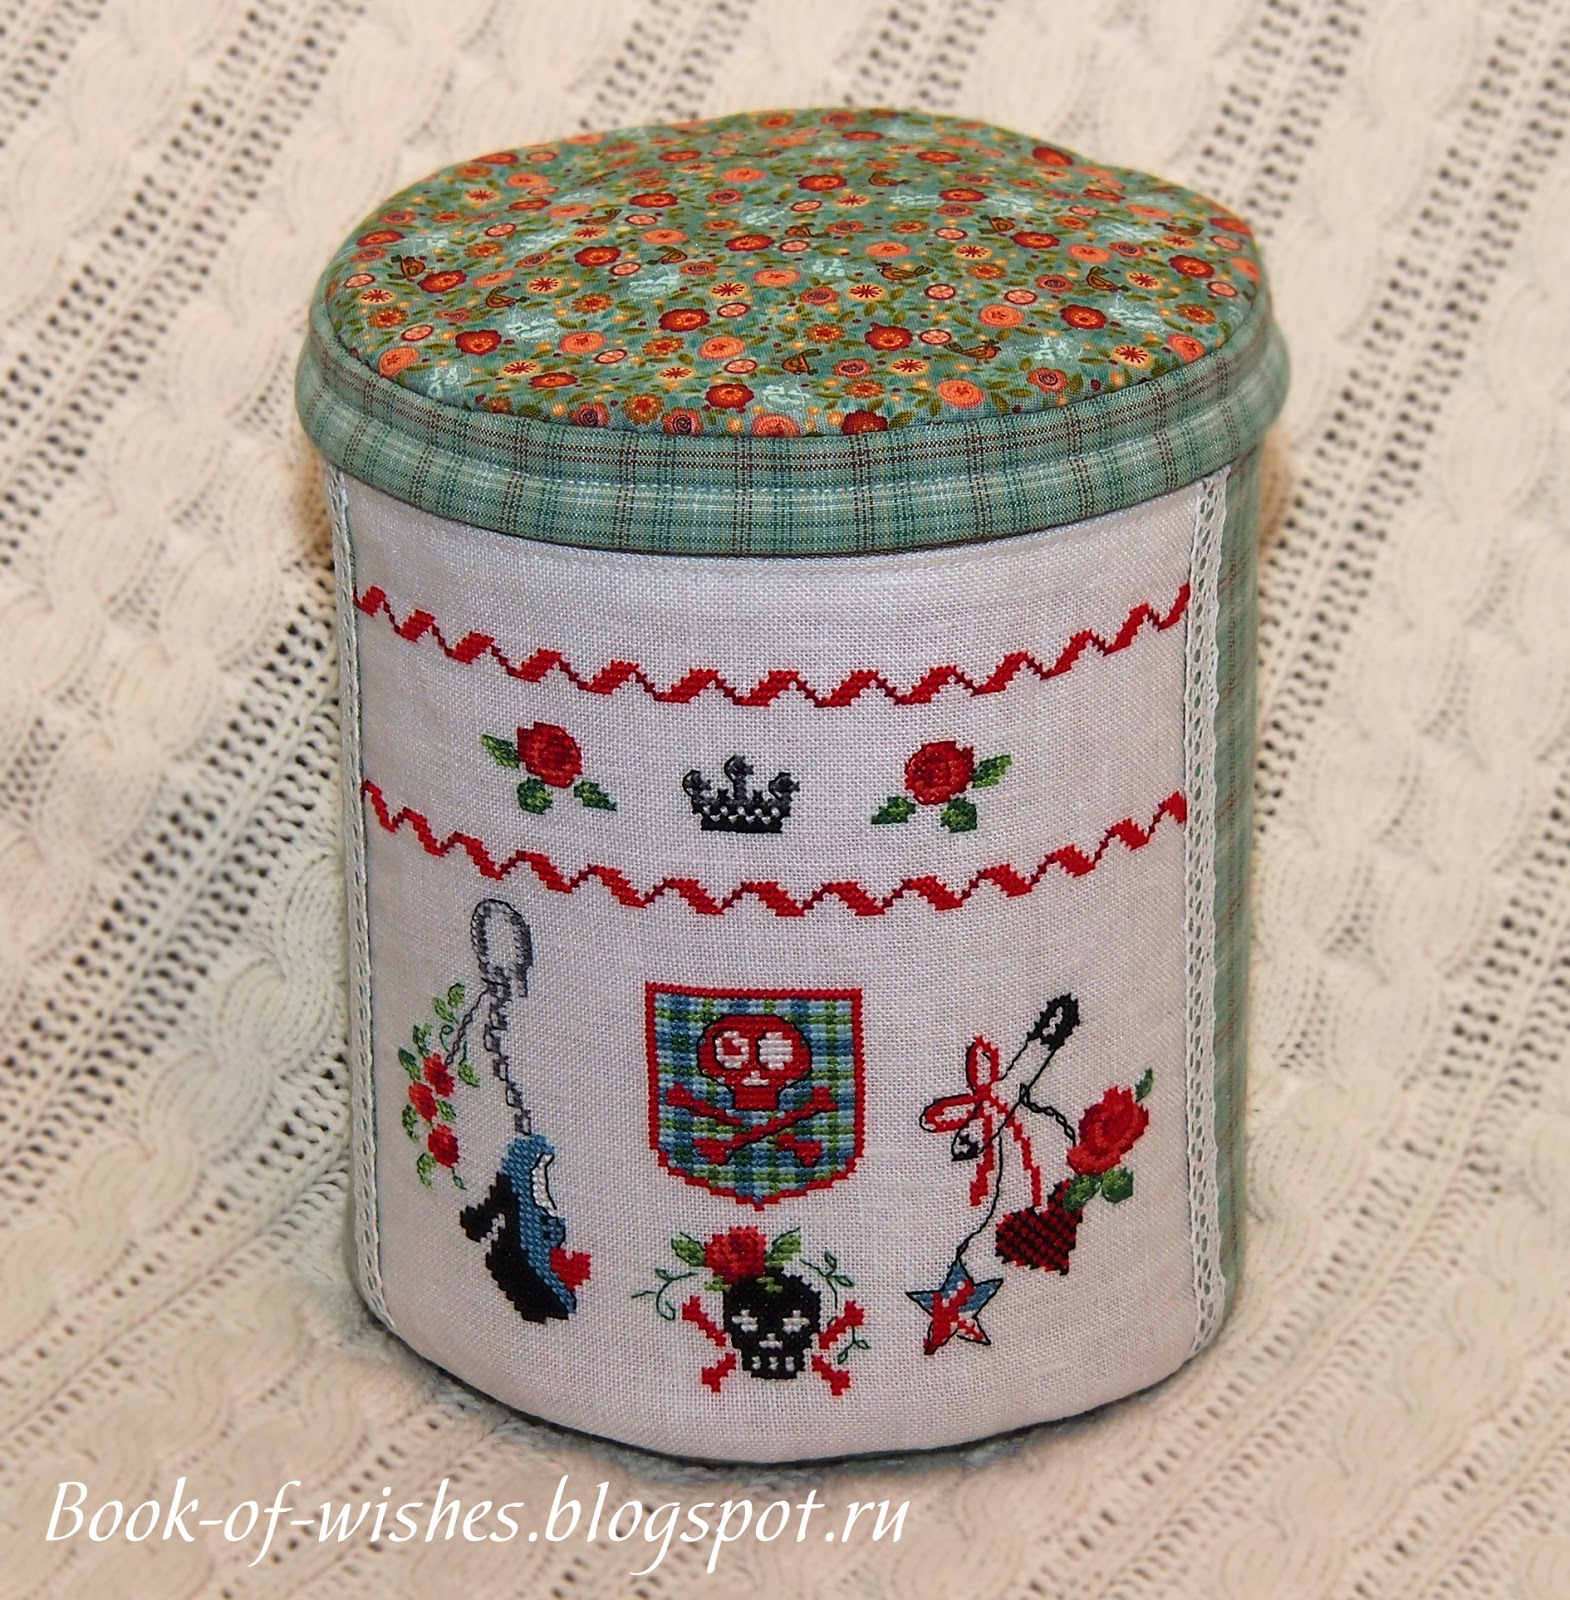 textile round basket with embroidery